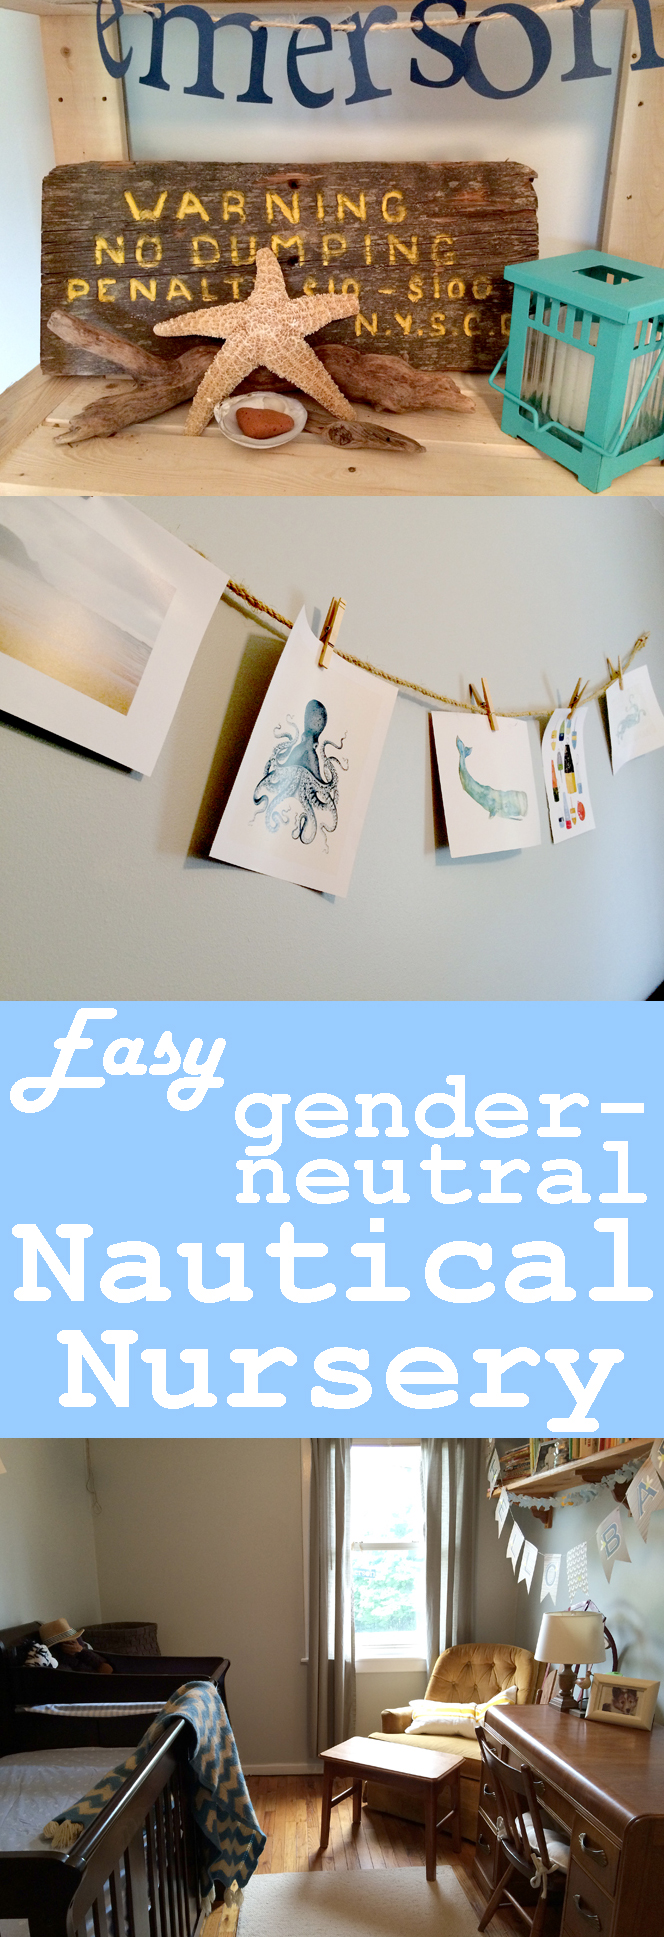 Easy gender neutral nautical nursery theme